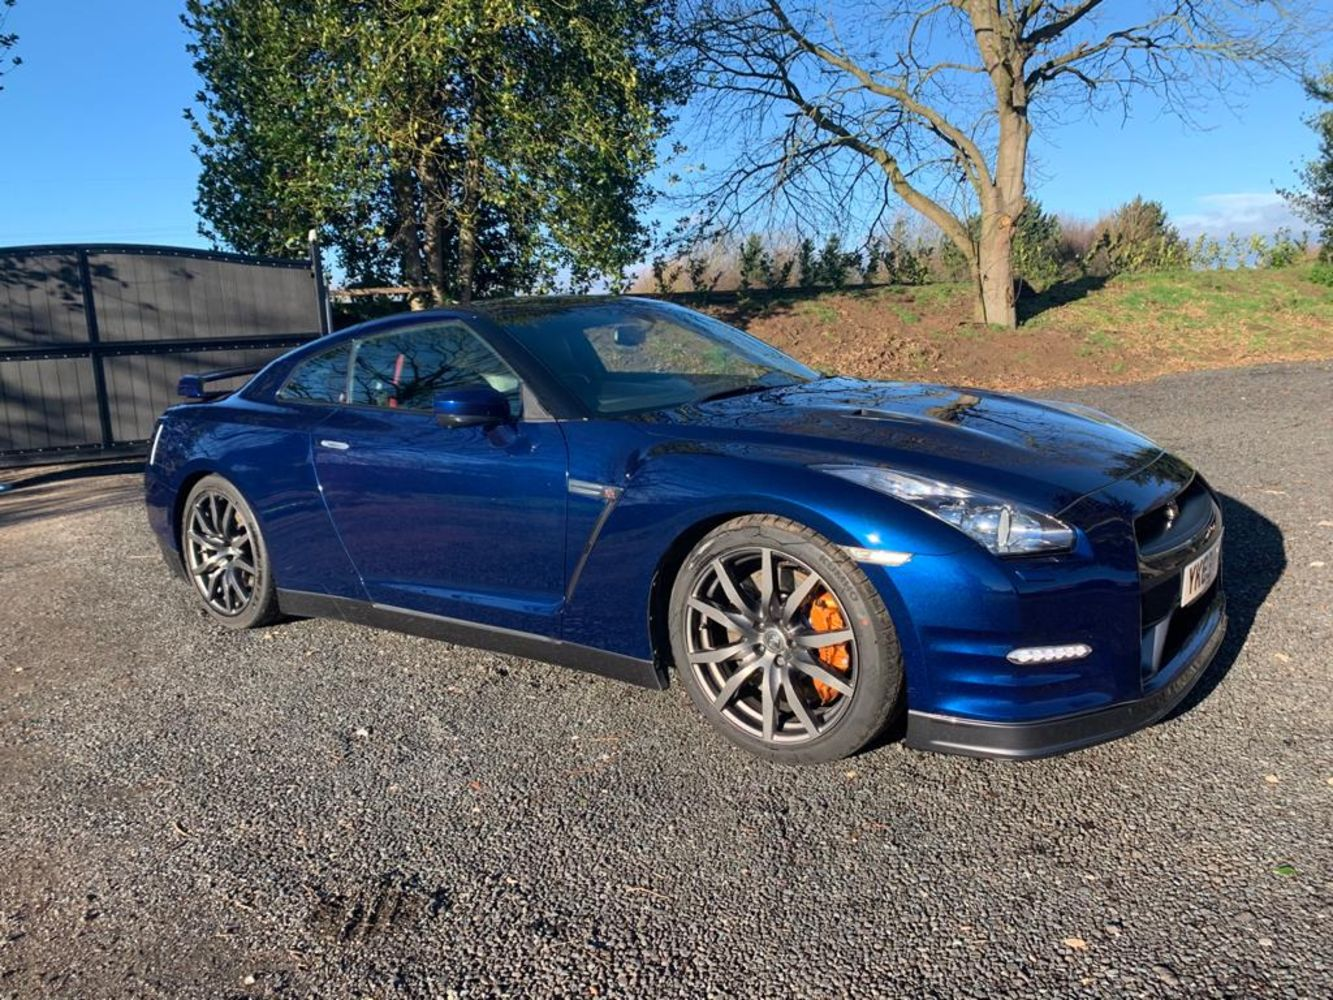 NISSAN GT-R PREMIUM EDITION BLUE, 2009 ITINEO JB740 A-CLASS MOTORHOME, FORD TRANSIT CREW VAN, 2014 TOYOTA HILUX & MORE Ending Sunday From 7pm